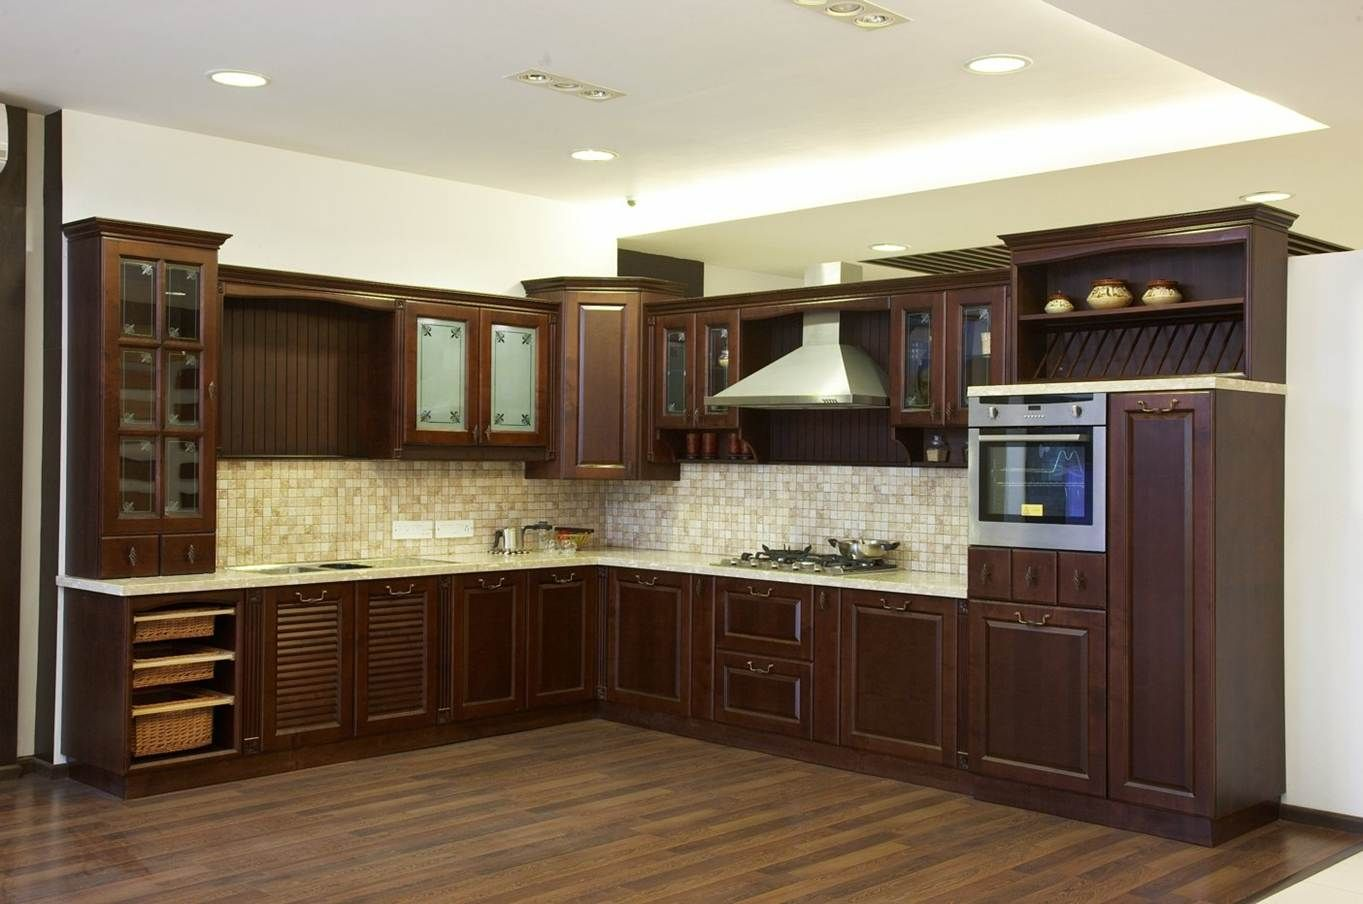 Modular kitchen with Solid-wood finish, Classic/traditional design ...